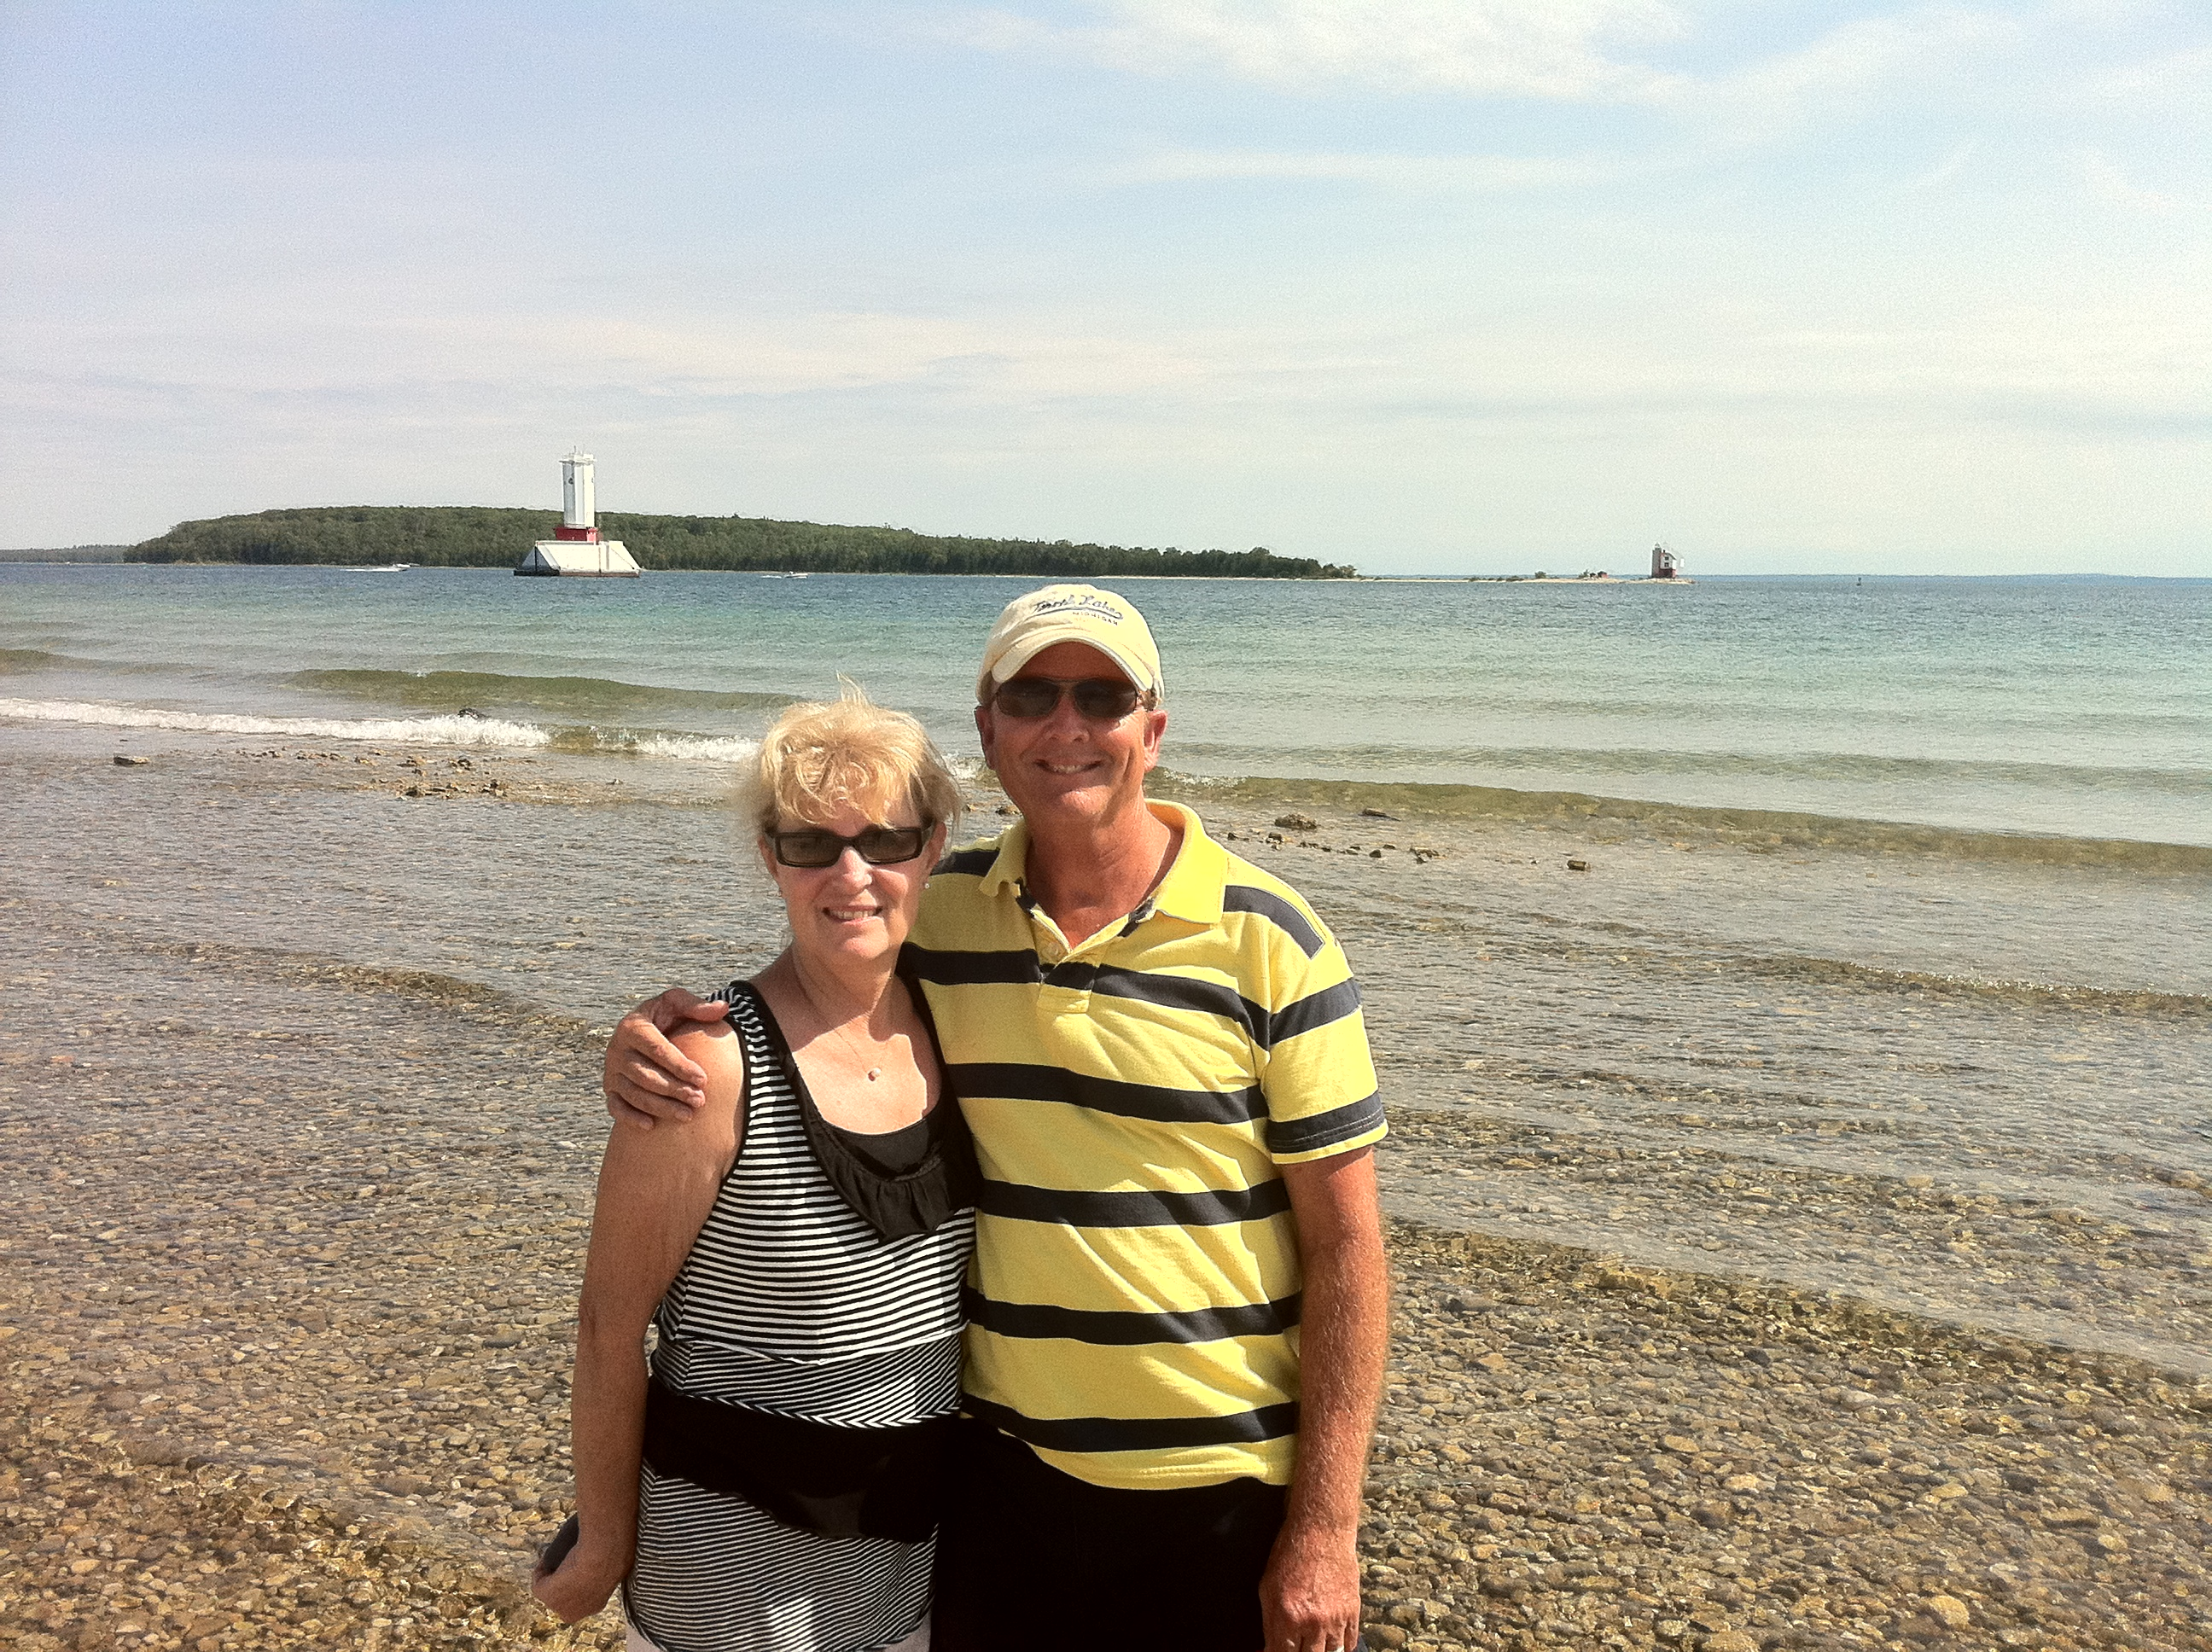 John & Sally on shore at Mackinac Isl 7.23.11-1